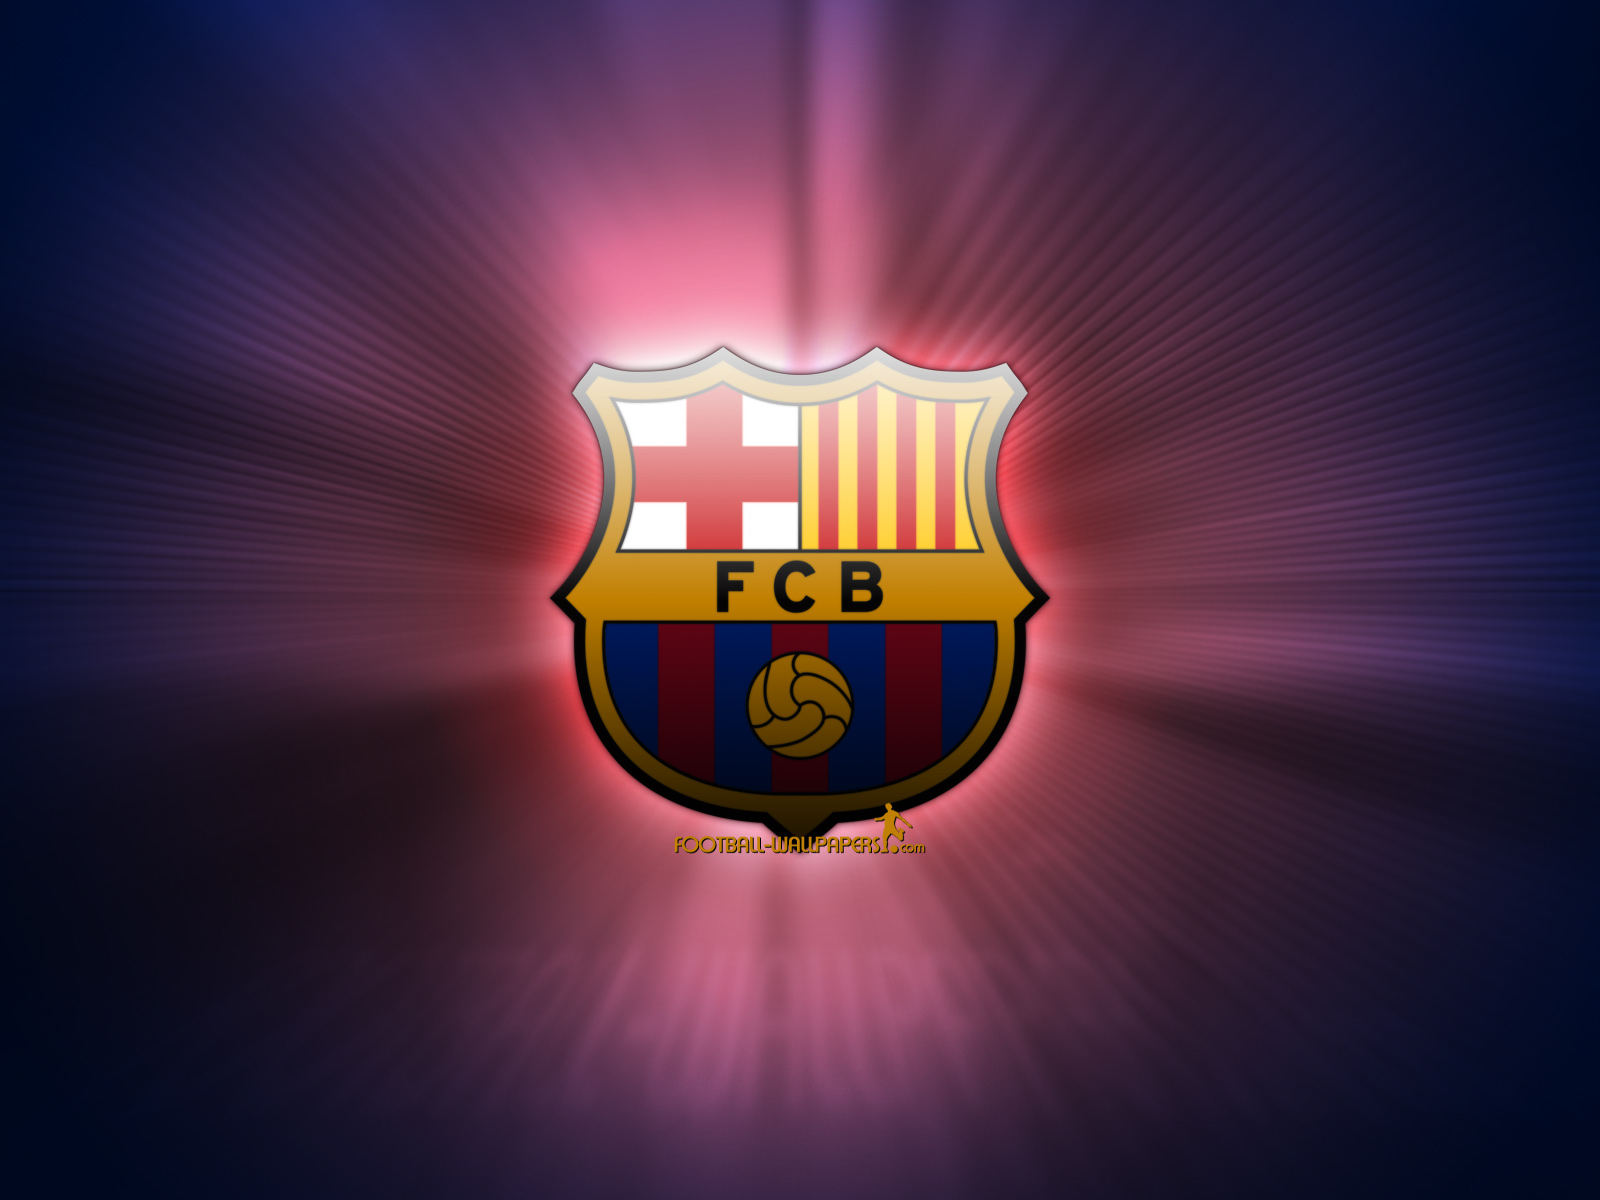 fcb wallpapers hd free - photo #12